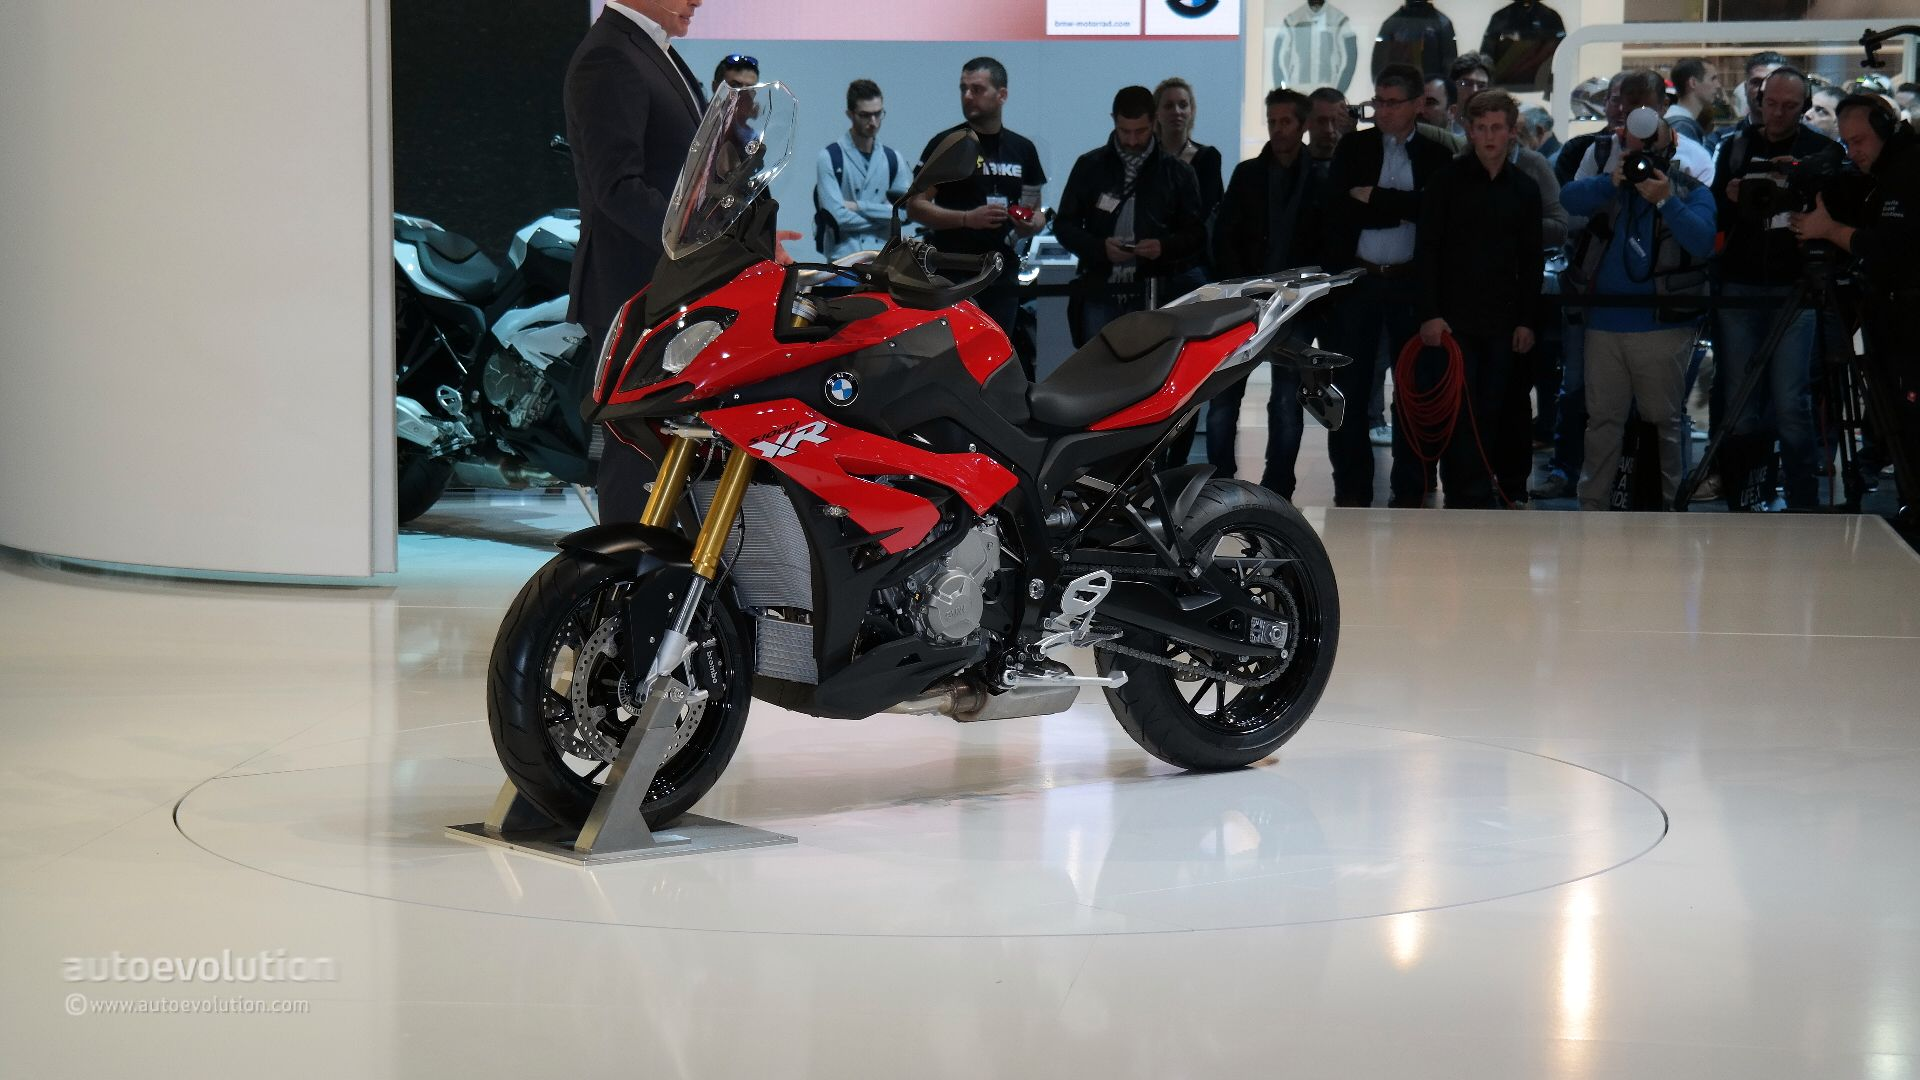 Bmw Official Website >> 2015 BMW S1000XR Prices Announced, More Affordable than Ducati Multistrada - autoevolution